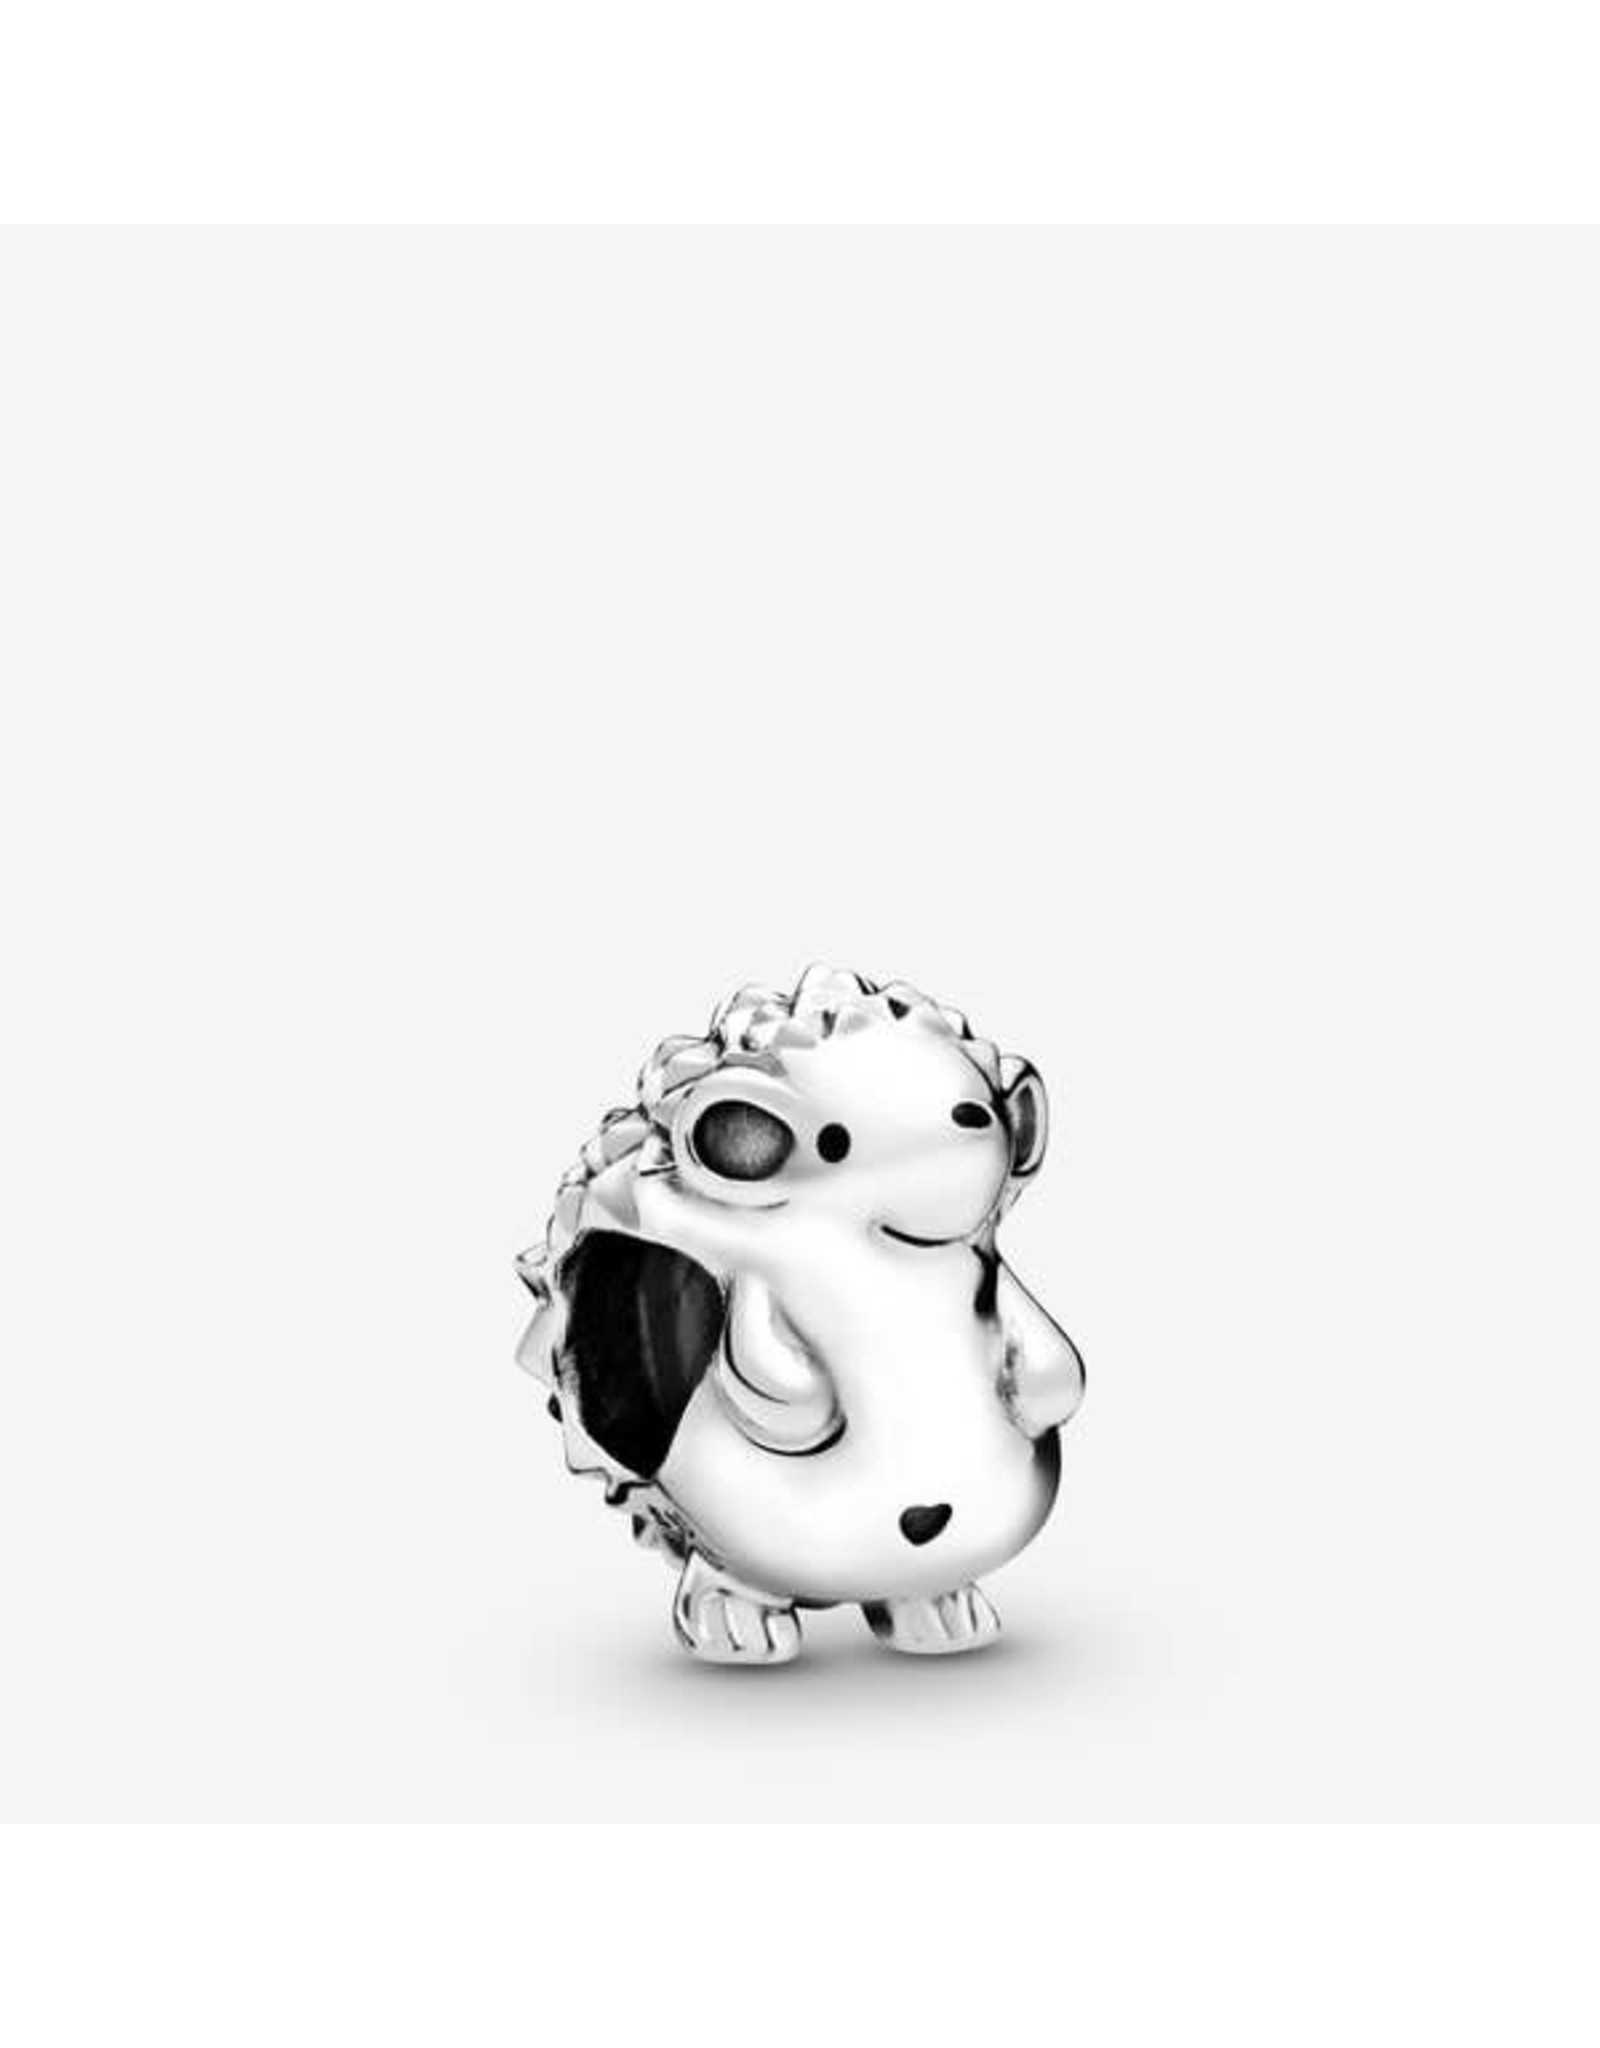 Pandora Pandora Charm, Nino The Hedgehog, Black Enamel